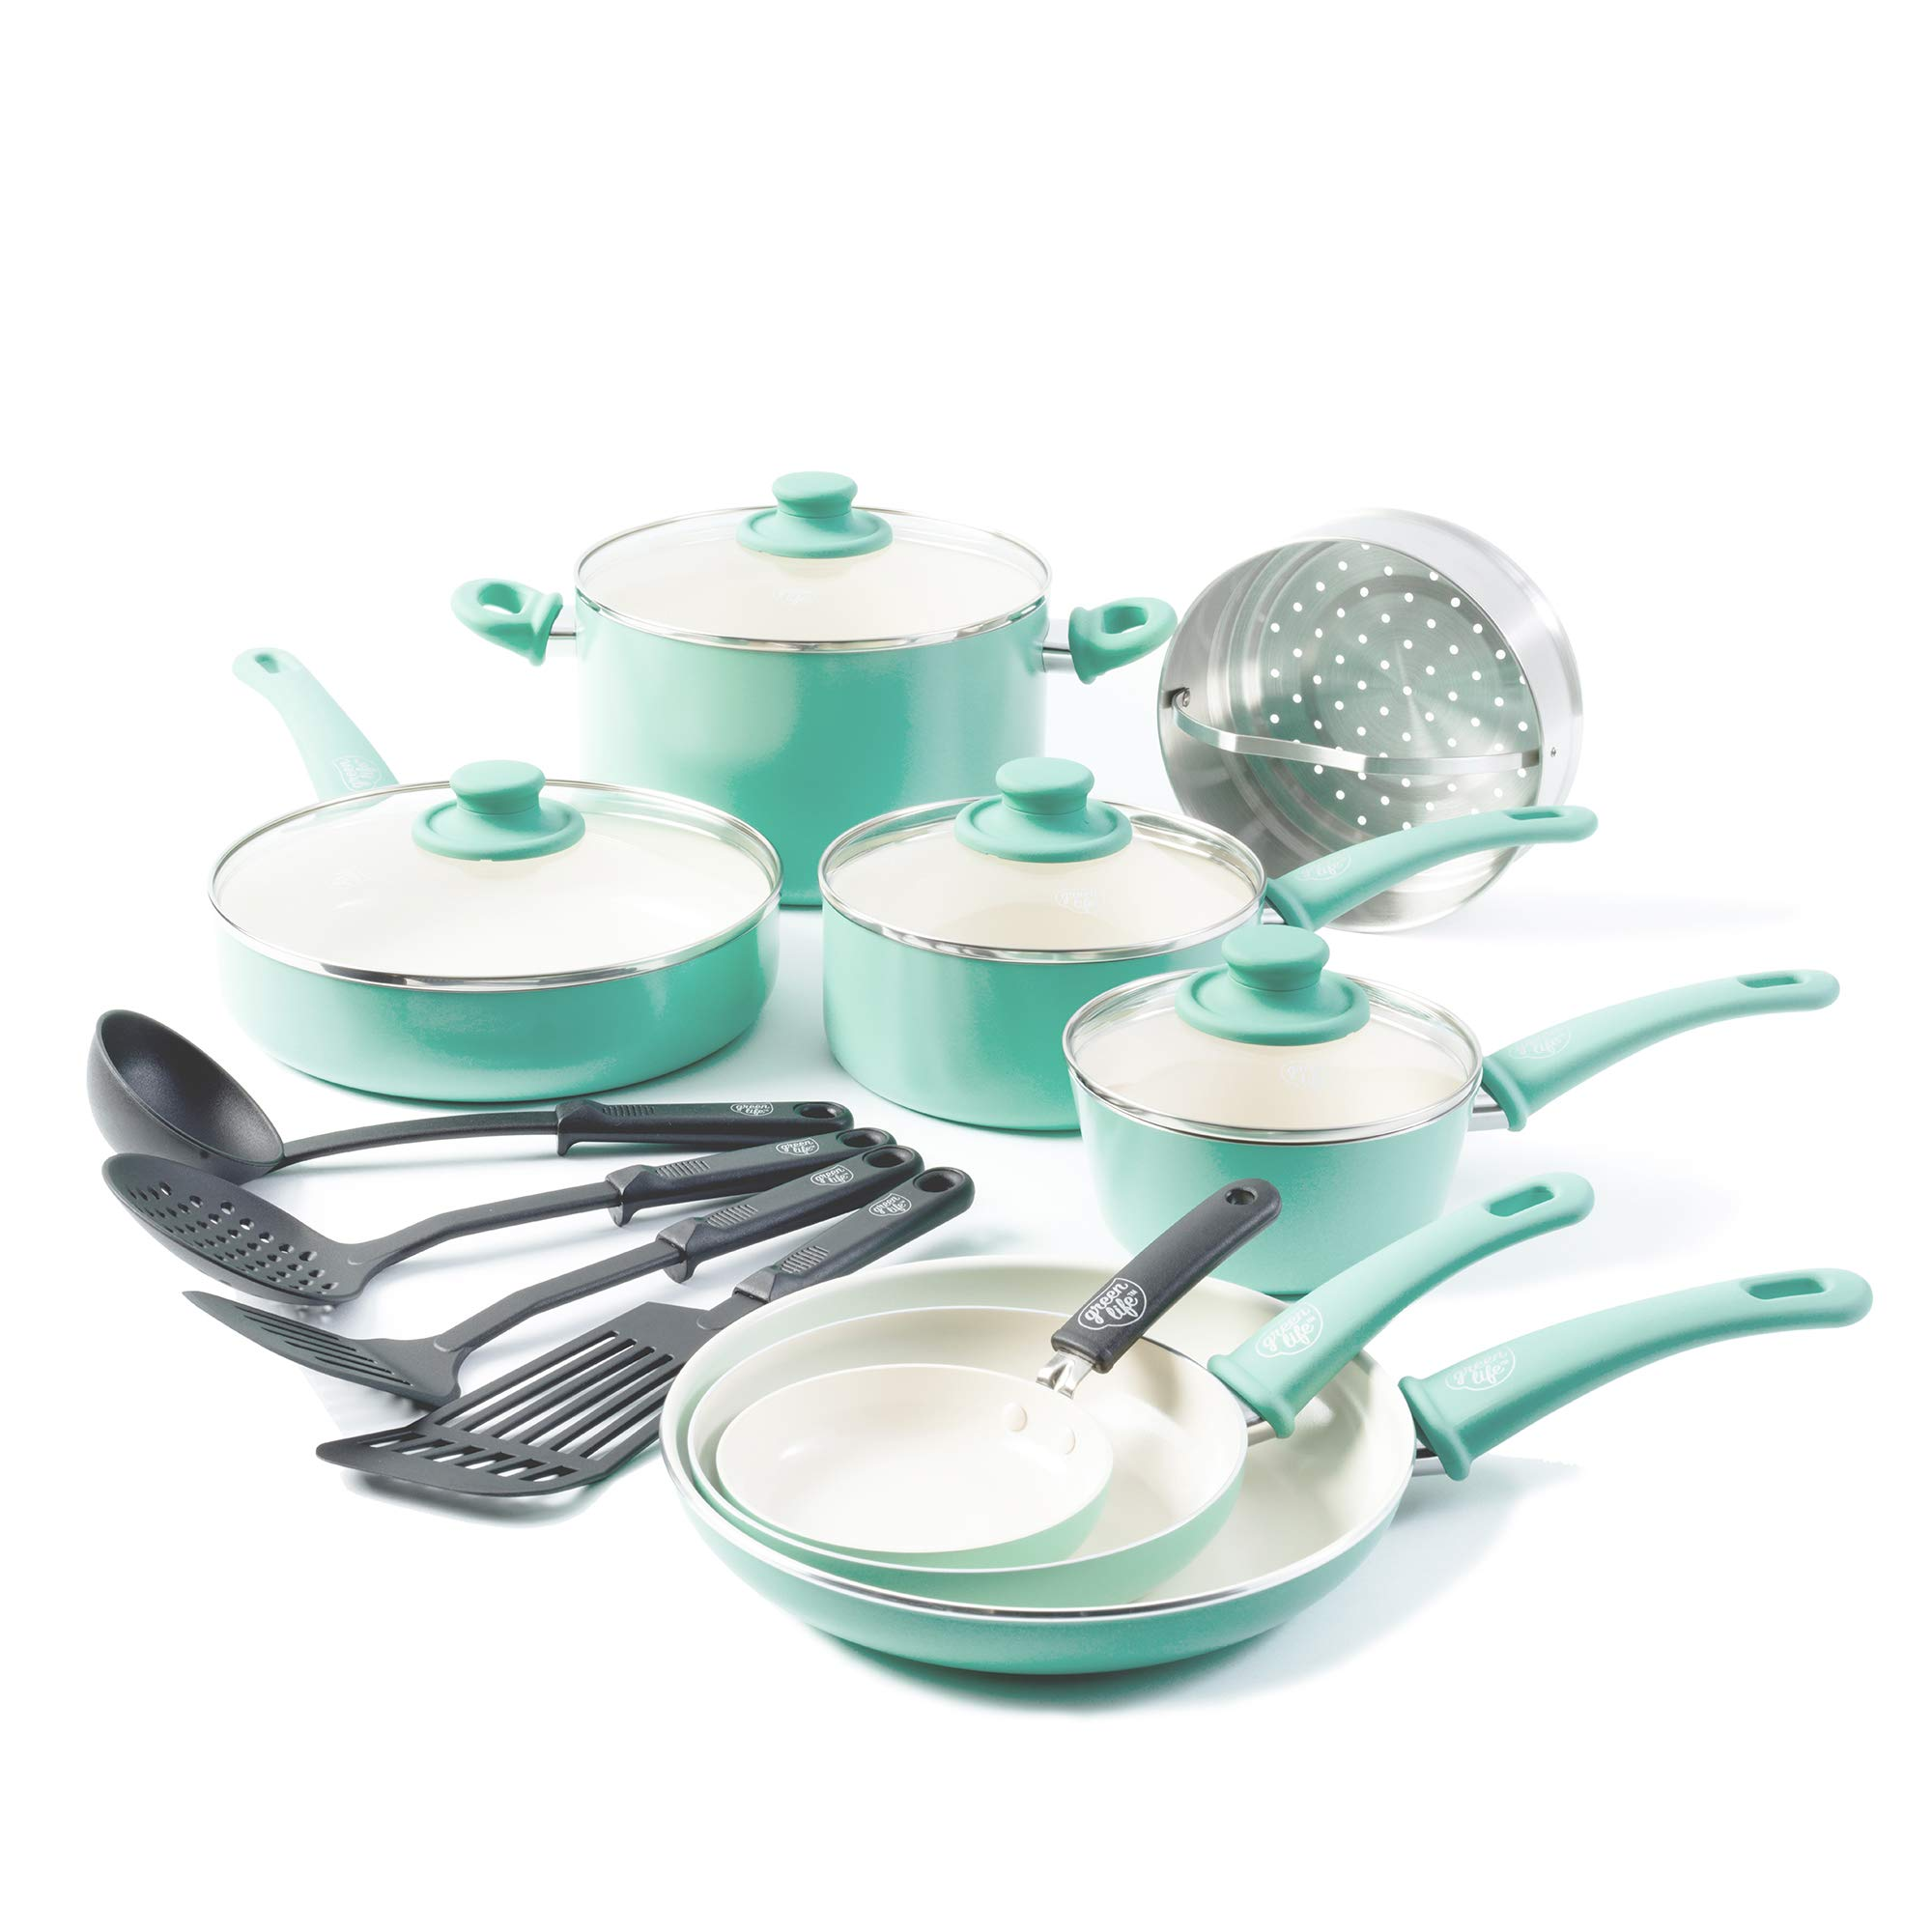 GreenLife Ceramic Non Stick Cookware Turquoise